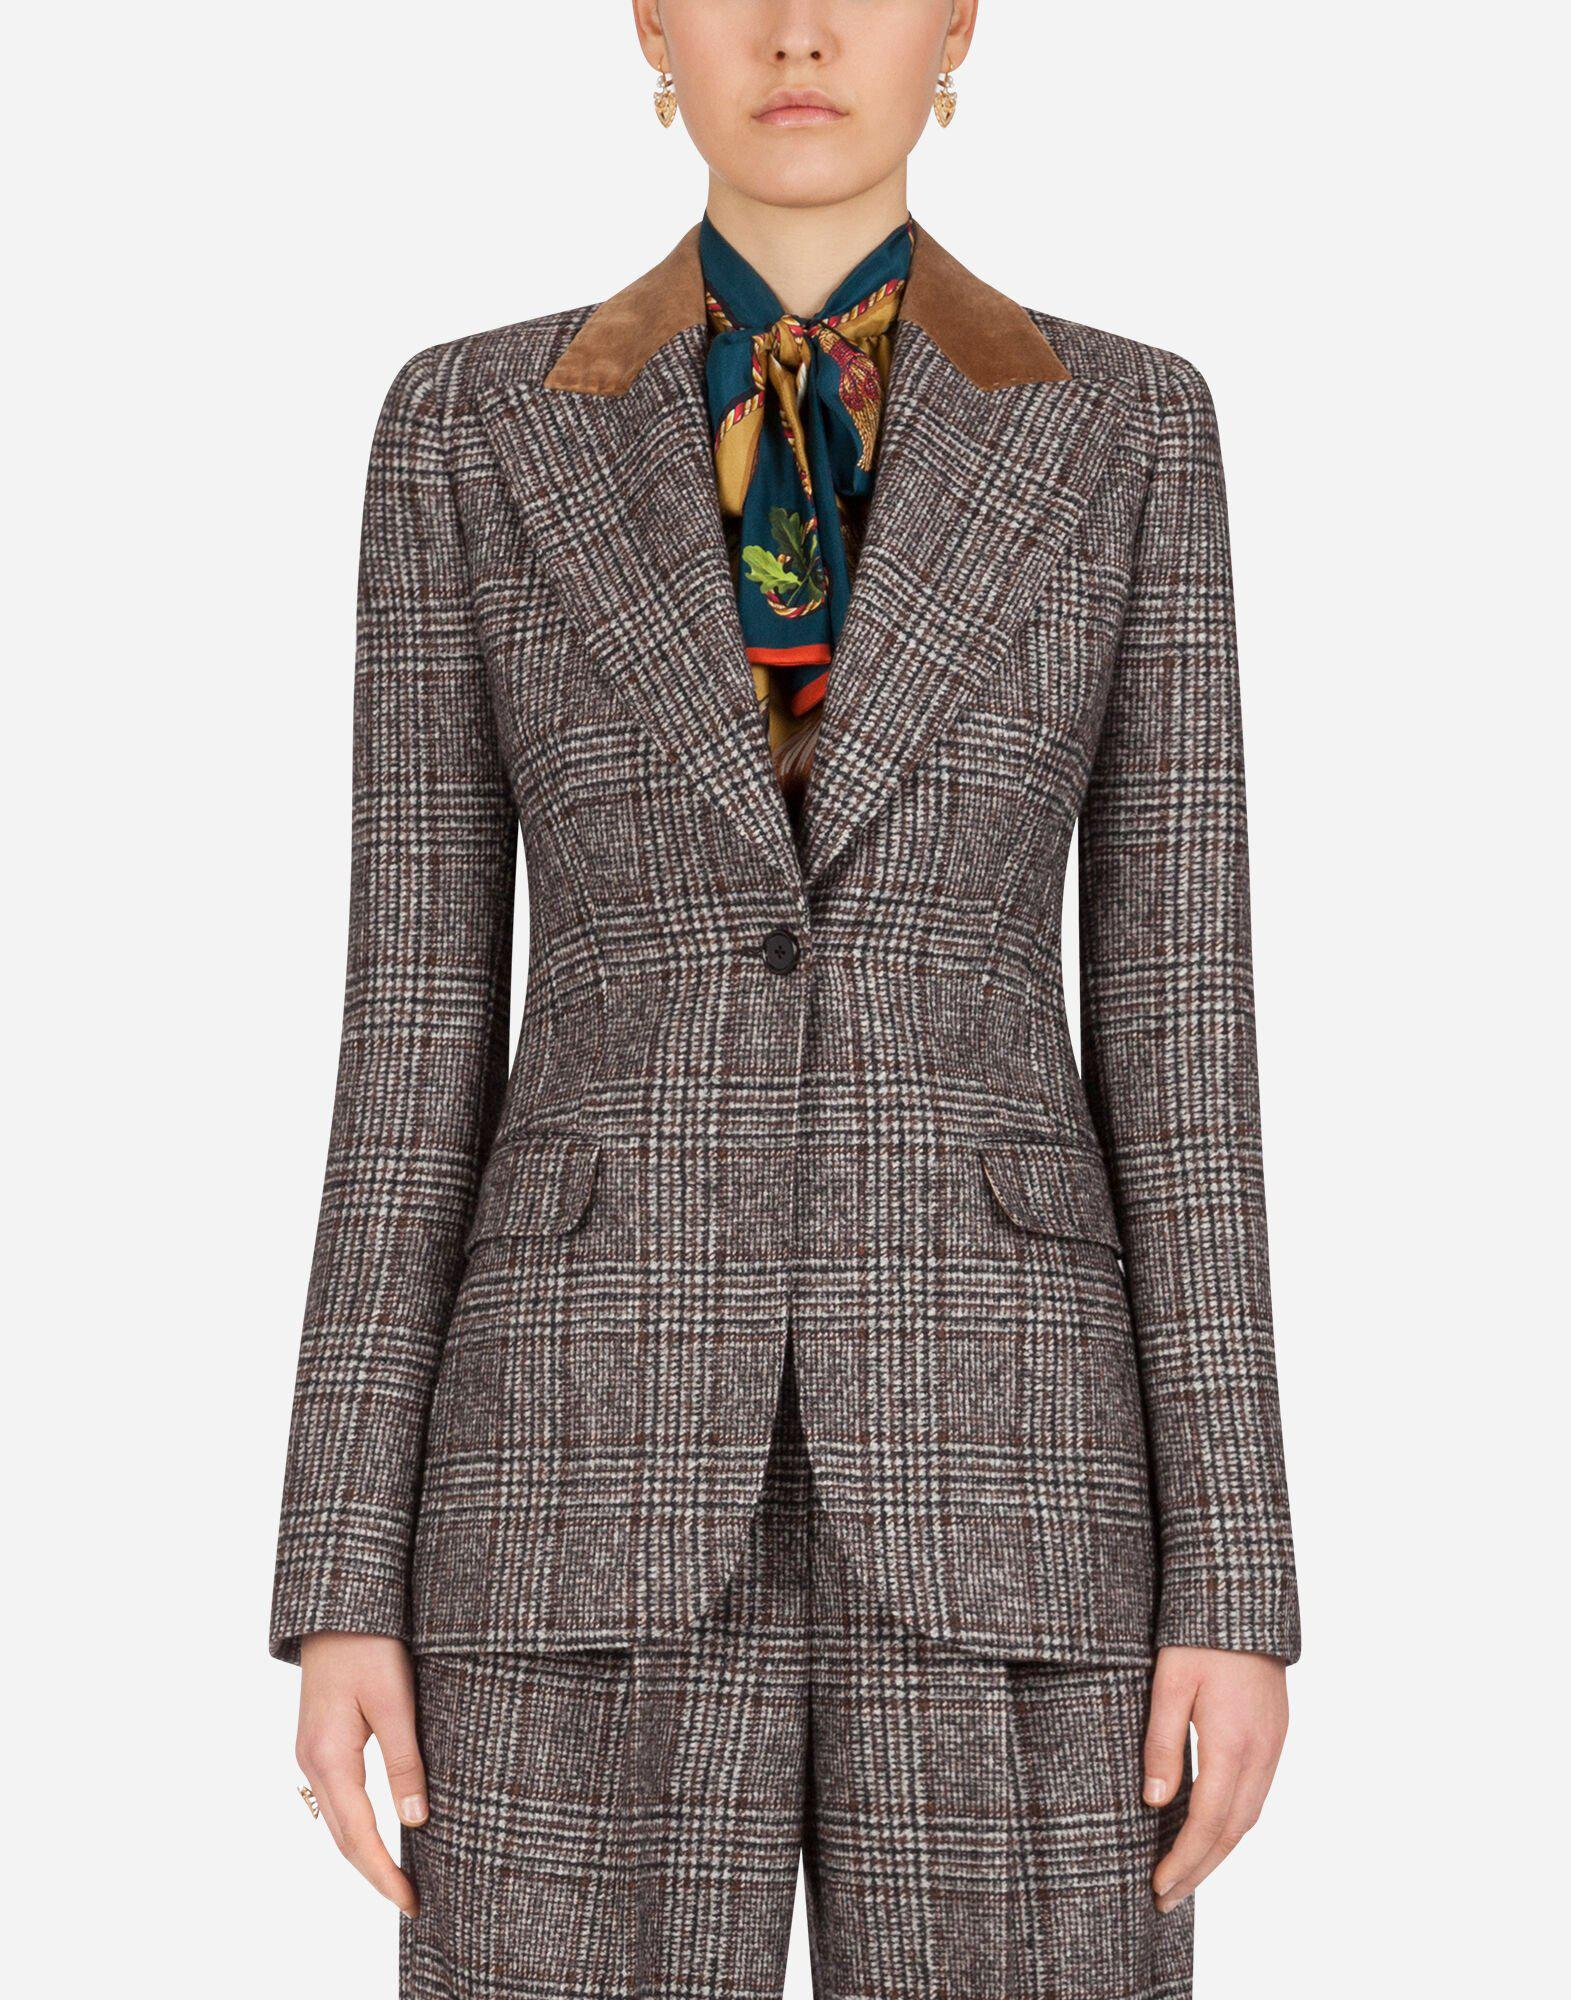 Single-breasted jacket in glen plaid with velvet collar